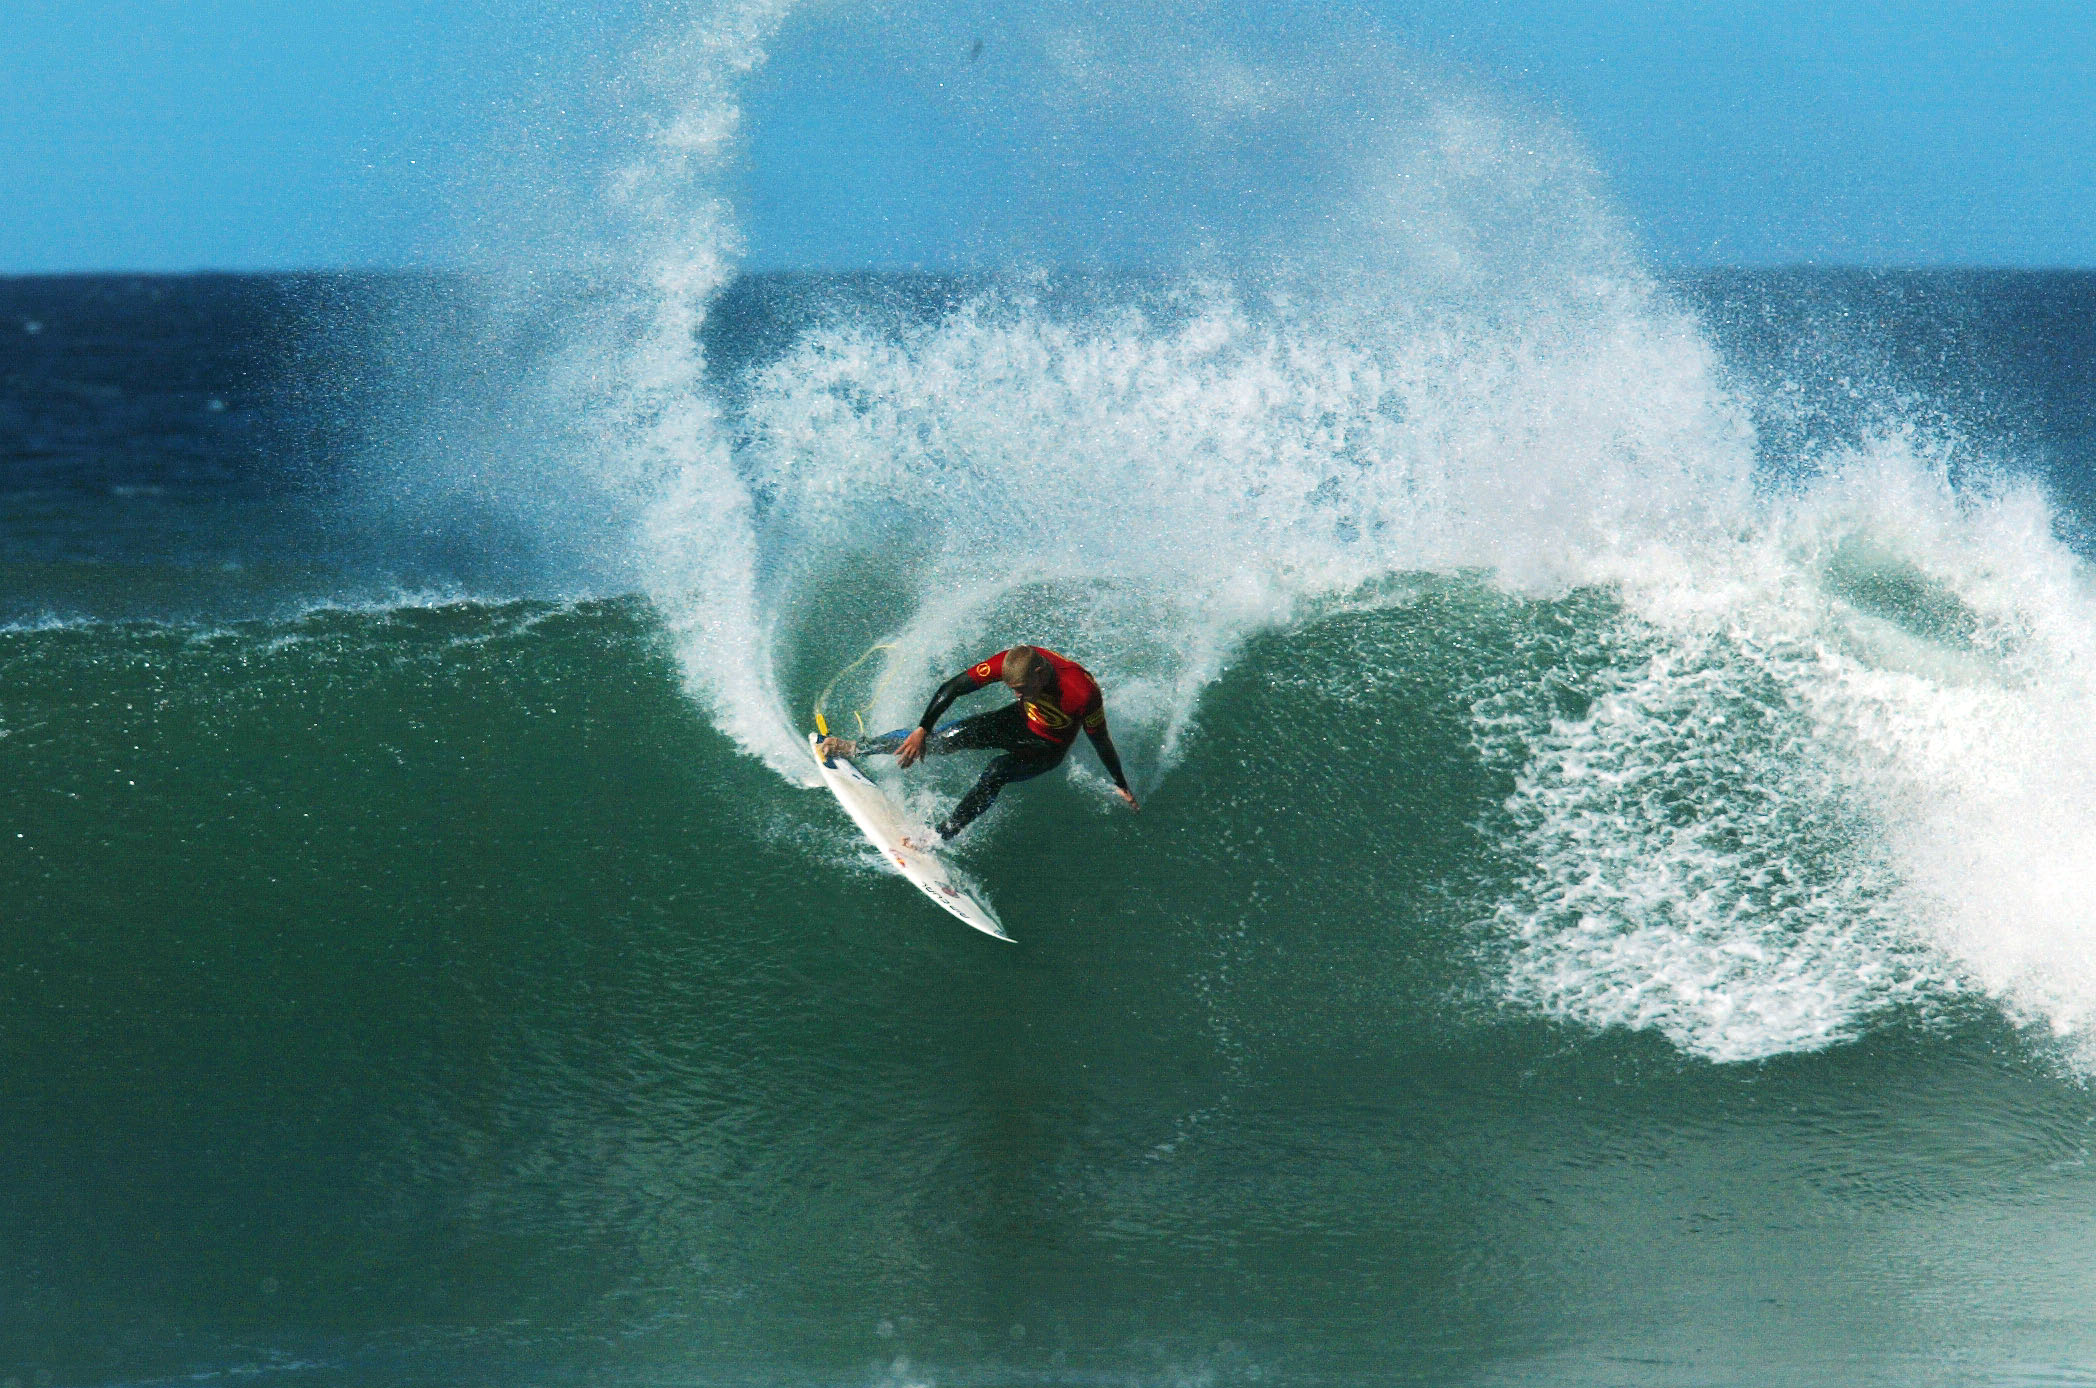 2002 J Bay Credit World Surf League